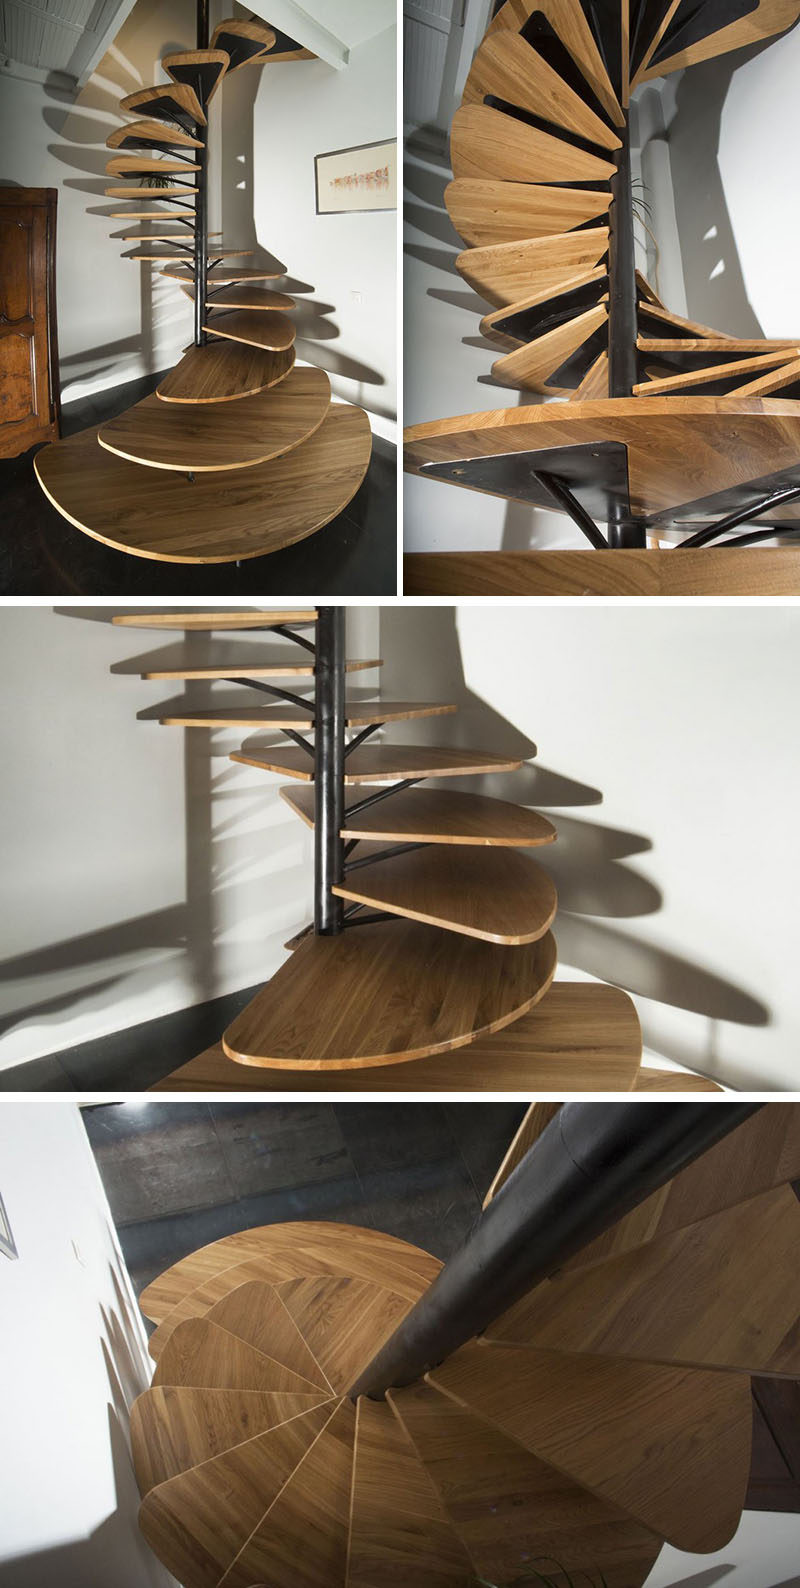 The steps of this wood and metal modern spiral staircase start out large and act like a small landing but get slightly smaller as you climb them.